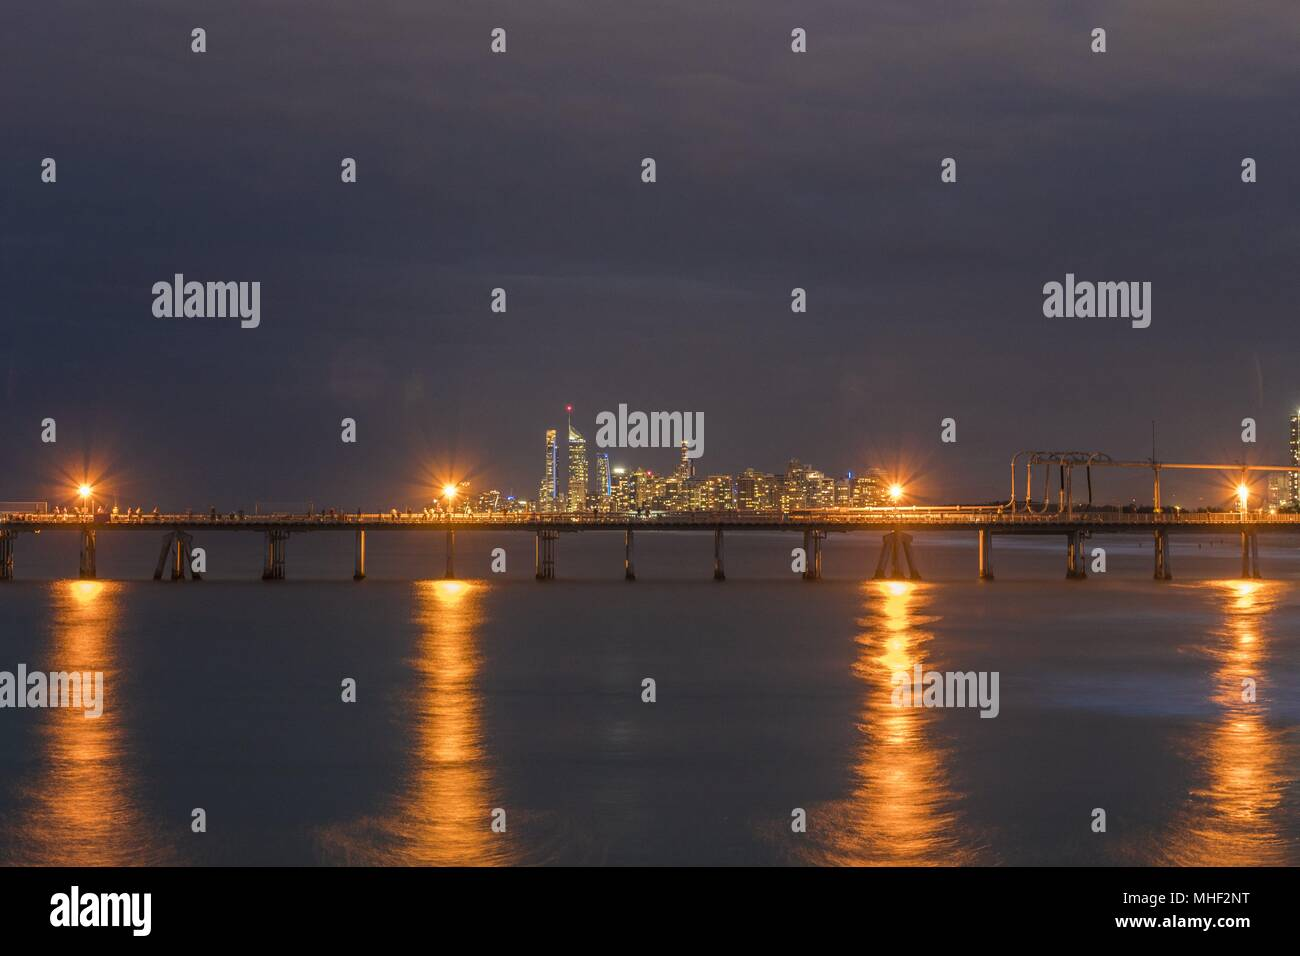 The dusk glow from the Gold Coast reflects across the water with the lamps of a jetty in the midground painting lines in the blurred water. - Stock Image